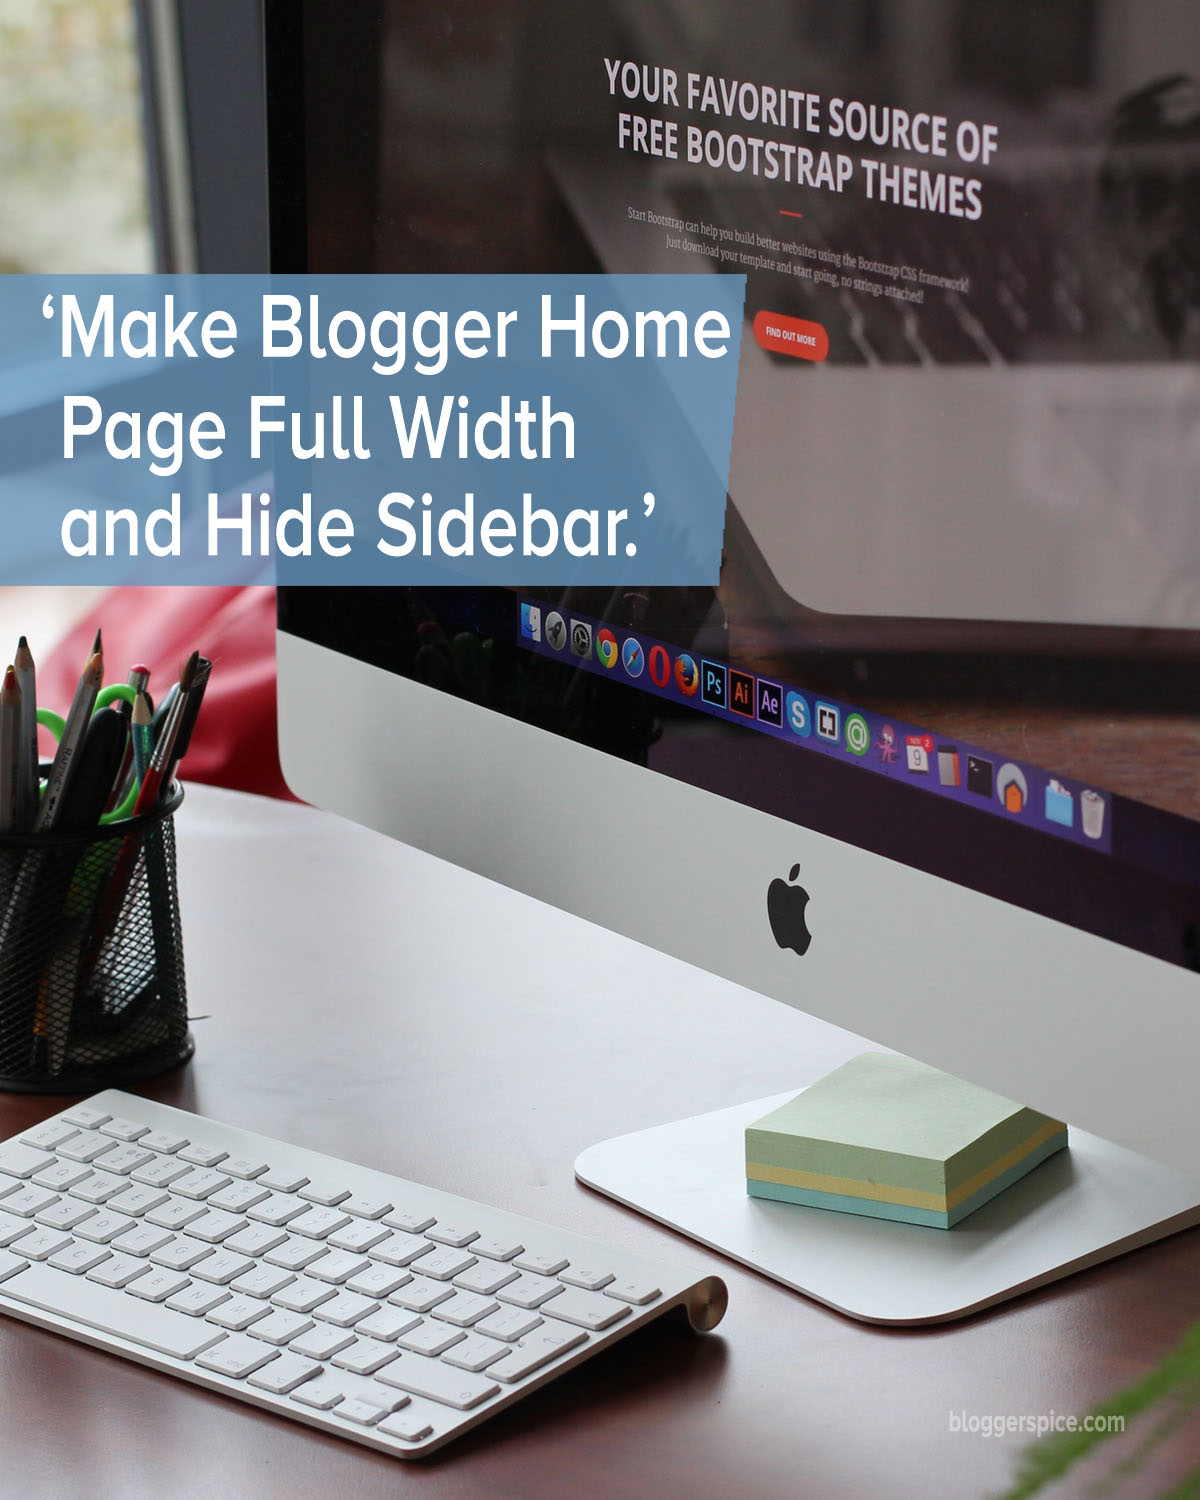 How to Make Blogger Home Page Full Width and Hide Sidebar?